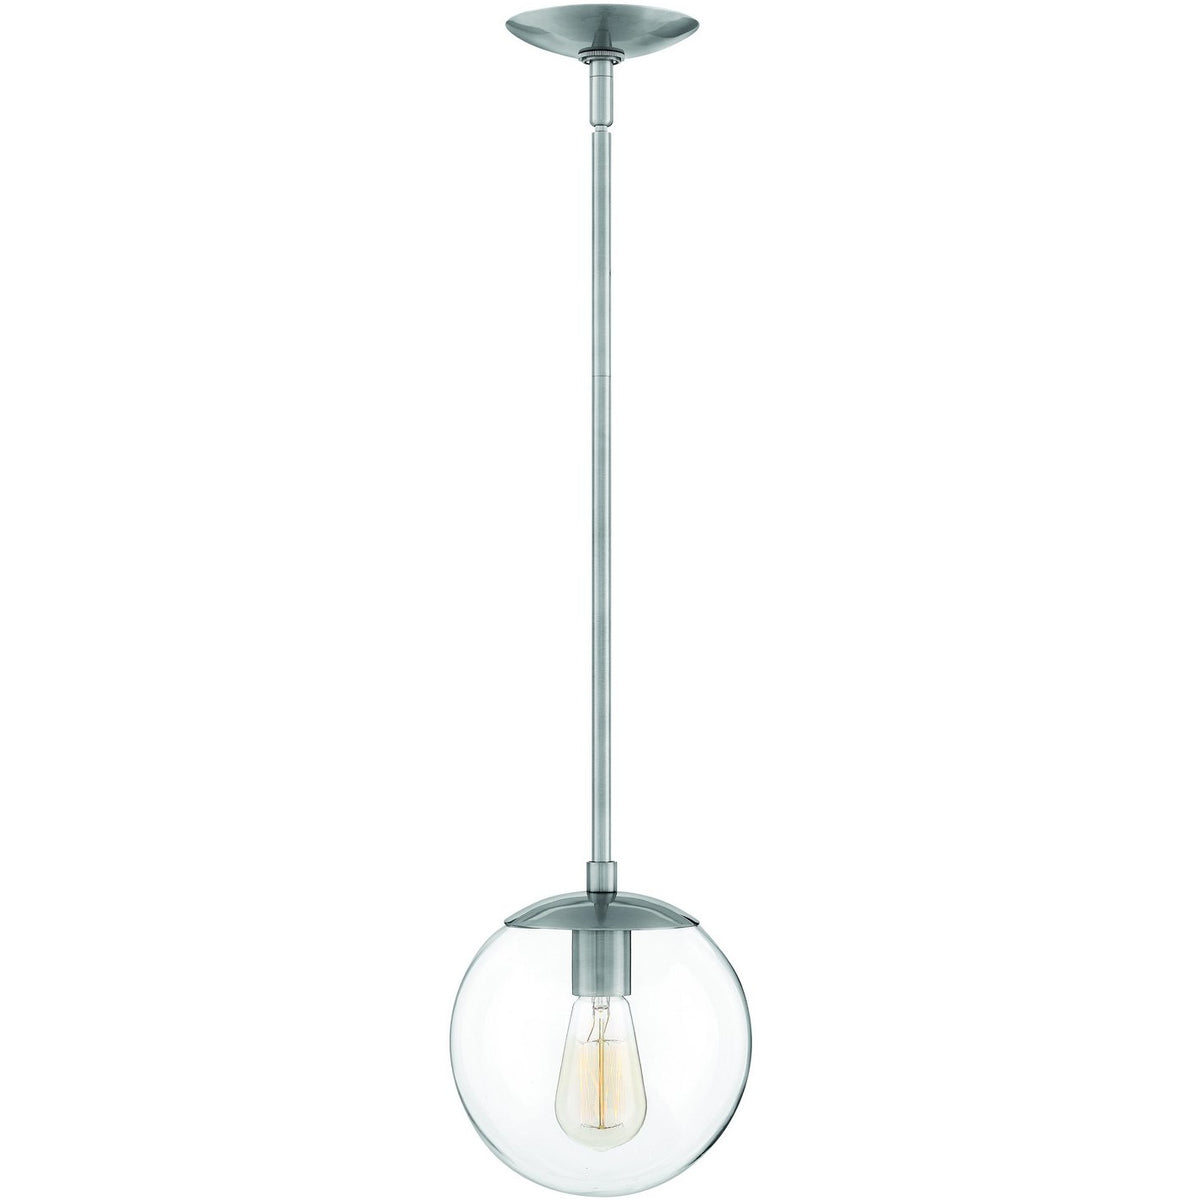 Hinkley Canada - 3747PL - One Light Pendant - Warby - Polished Antique Nickel